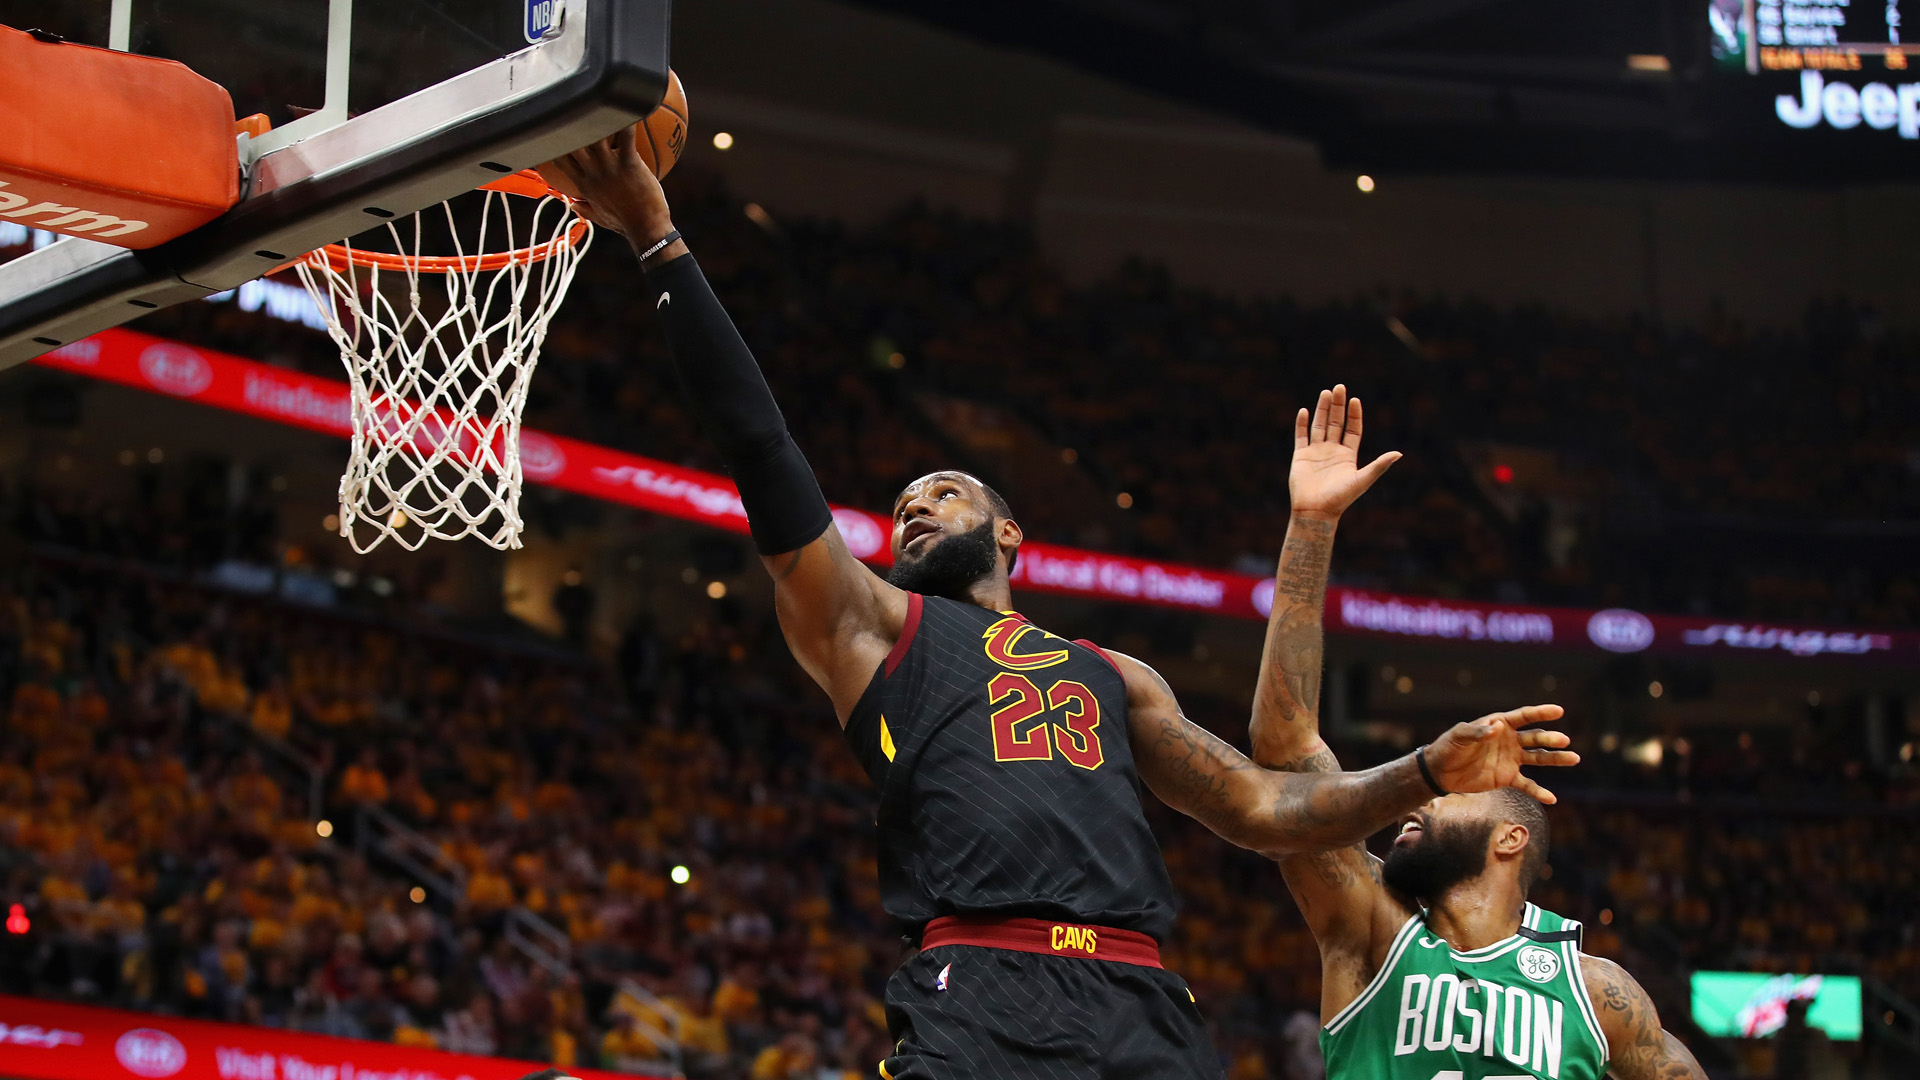 NBA playoffs 2018 wrap: Cavaliers rout Celtics to cut series deficit to 2-1